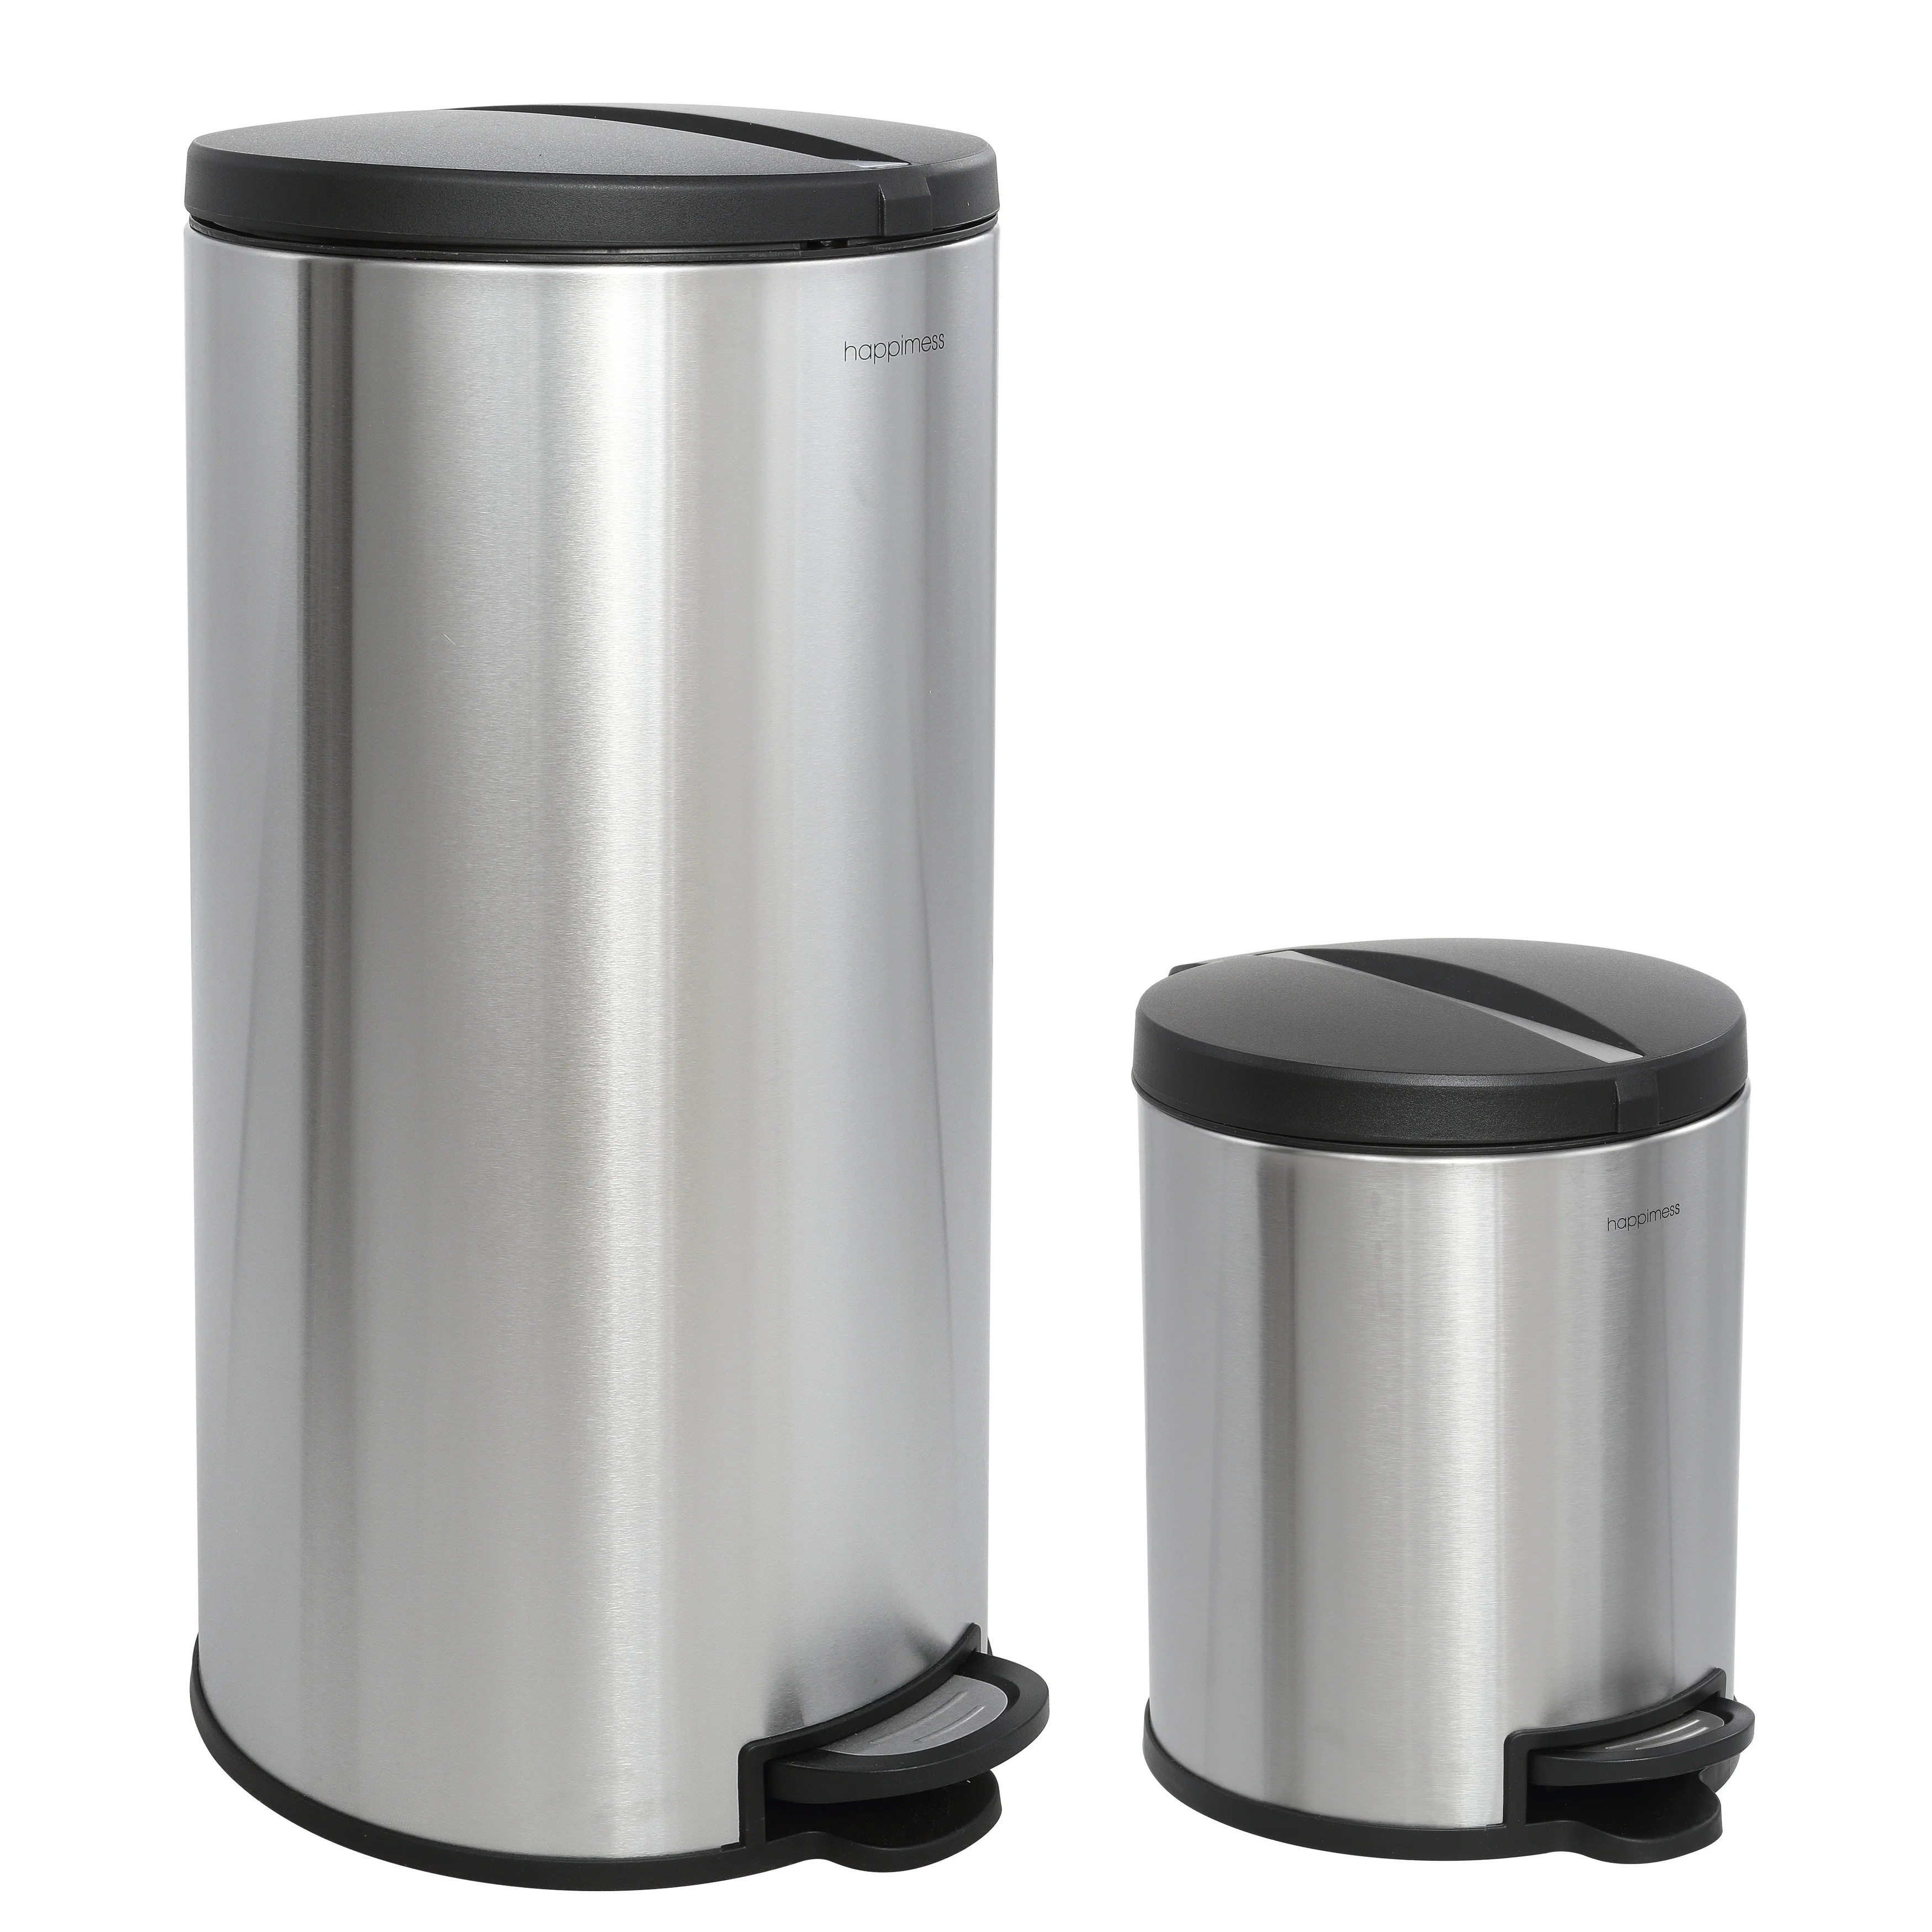 Mini Plastic Trash Can With Lid Happimess Oscar Round 8 Gallon Step Open Trash Can With Free Mini Trash Can Stainless Steel Black